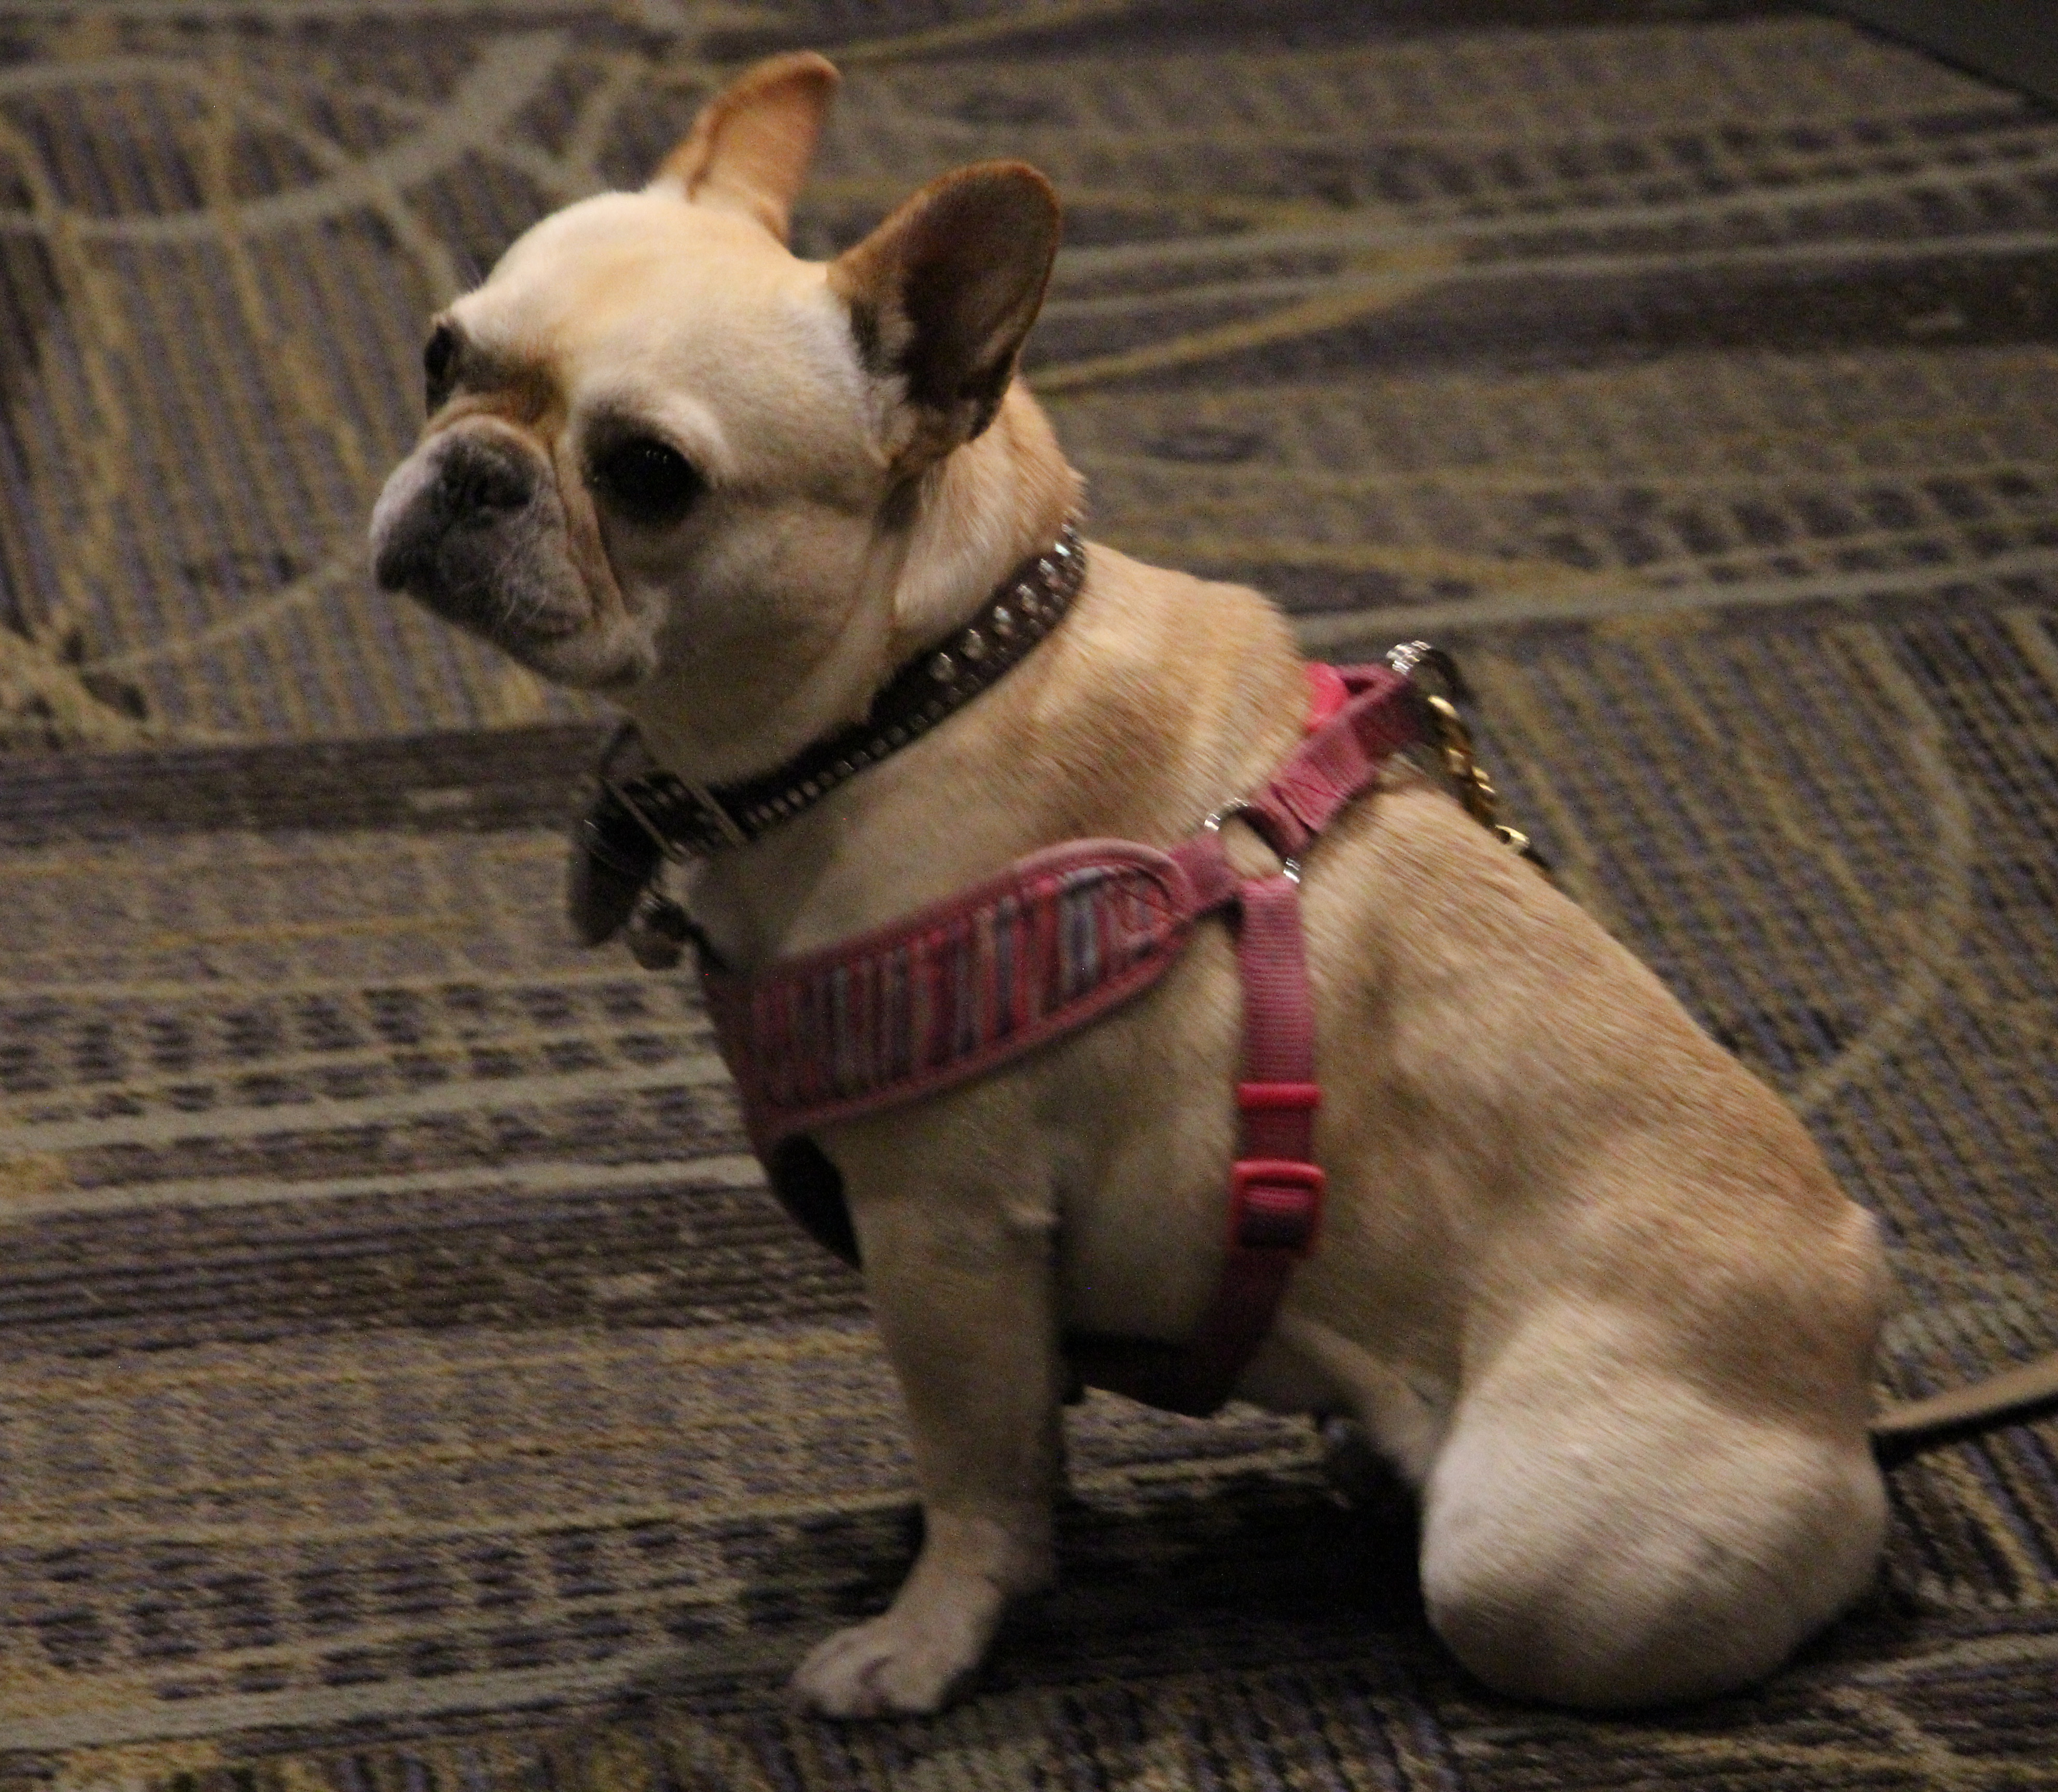 french bull dog with a harness in the indoor theater